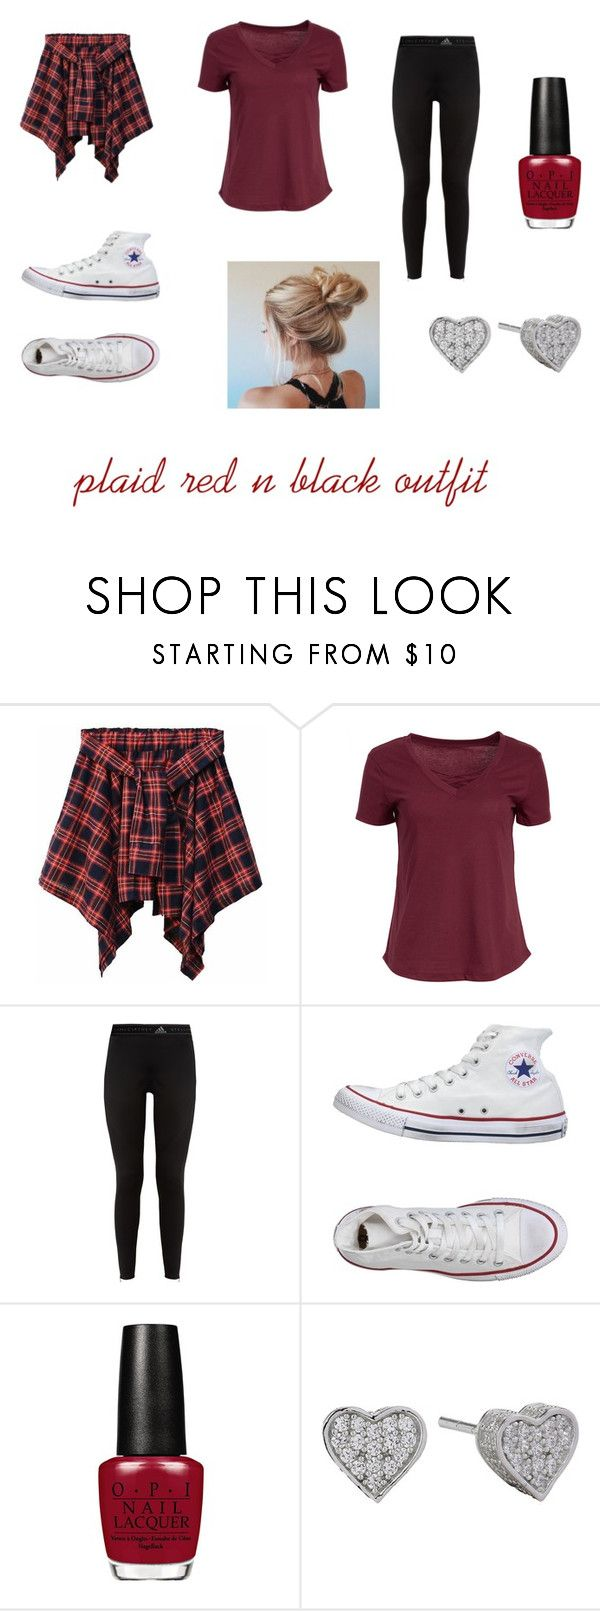 """plaid red n black outfit"" by lilyflips101 on Polyvore featuring Boxercraft, adidas and Converse"